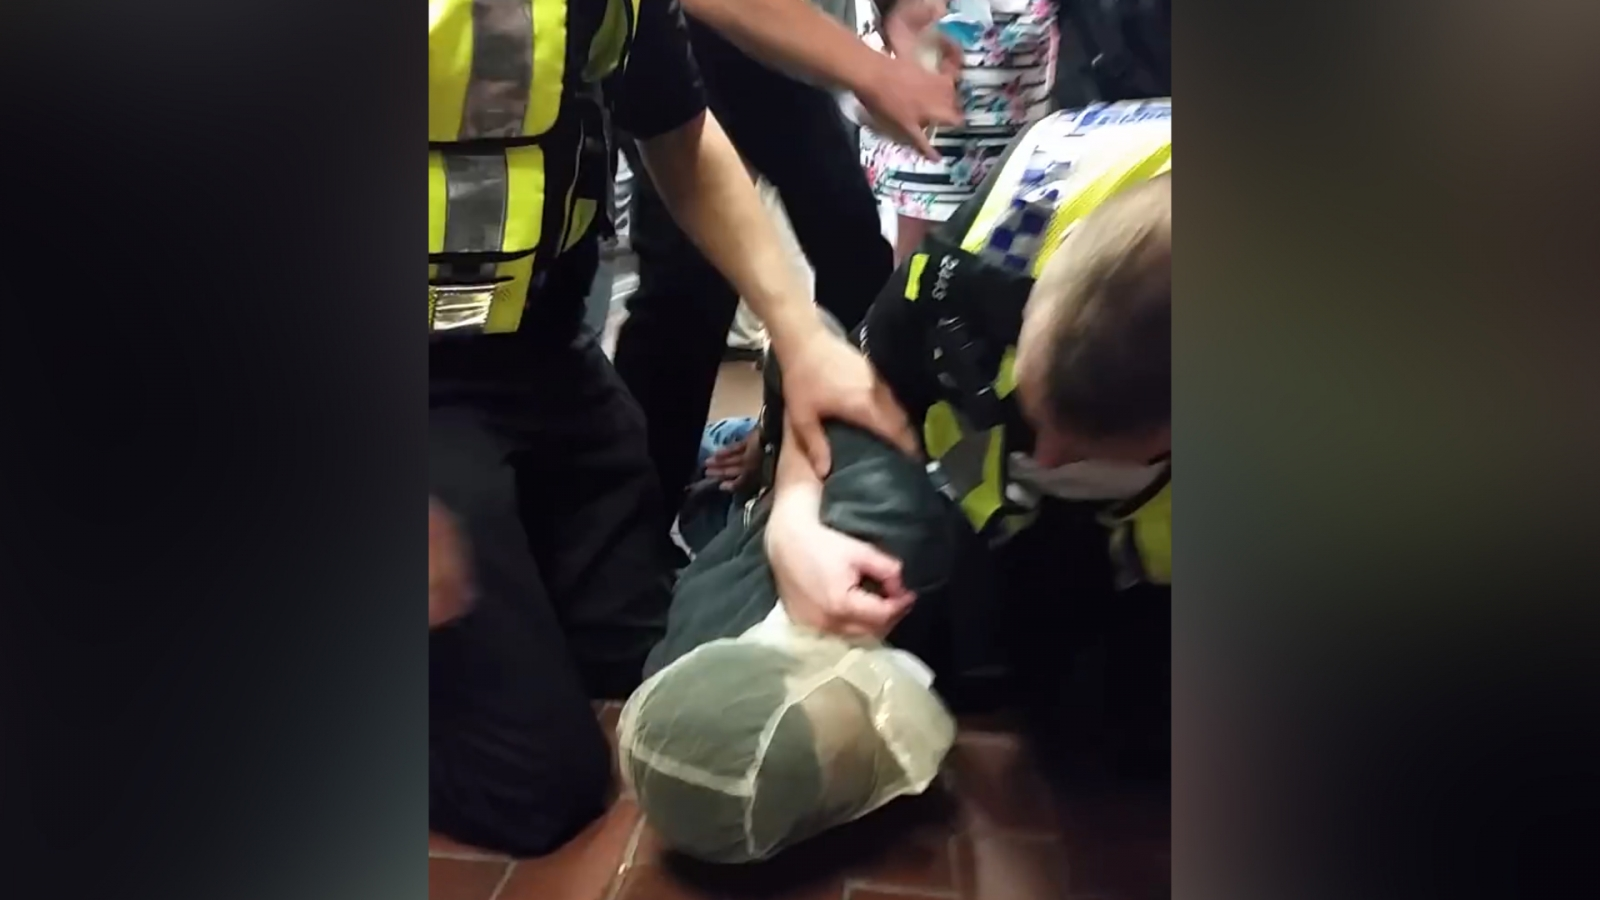 Investigation launched after police force hood over man's head at London Bridge station